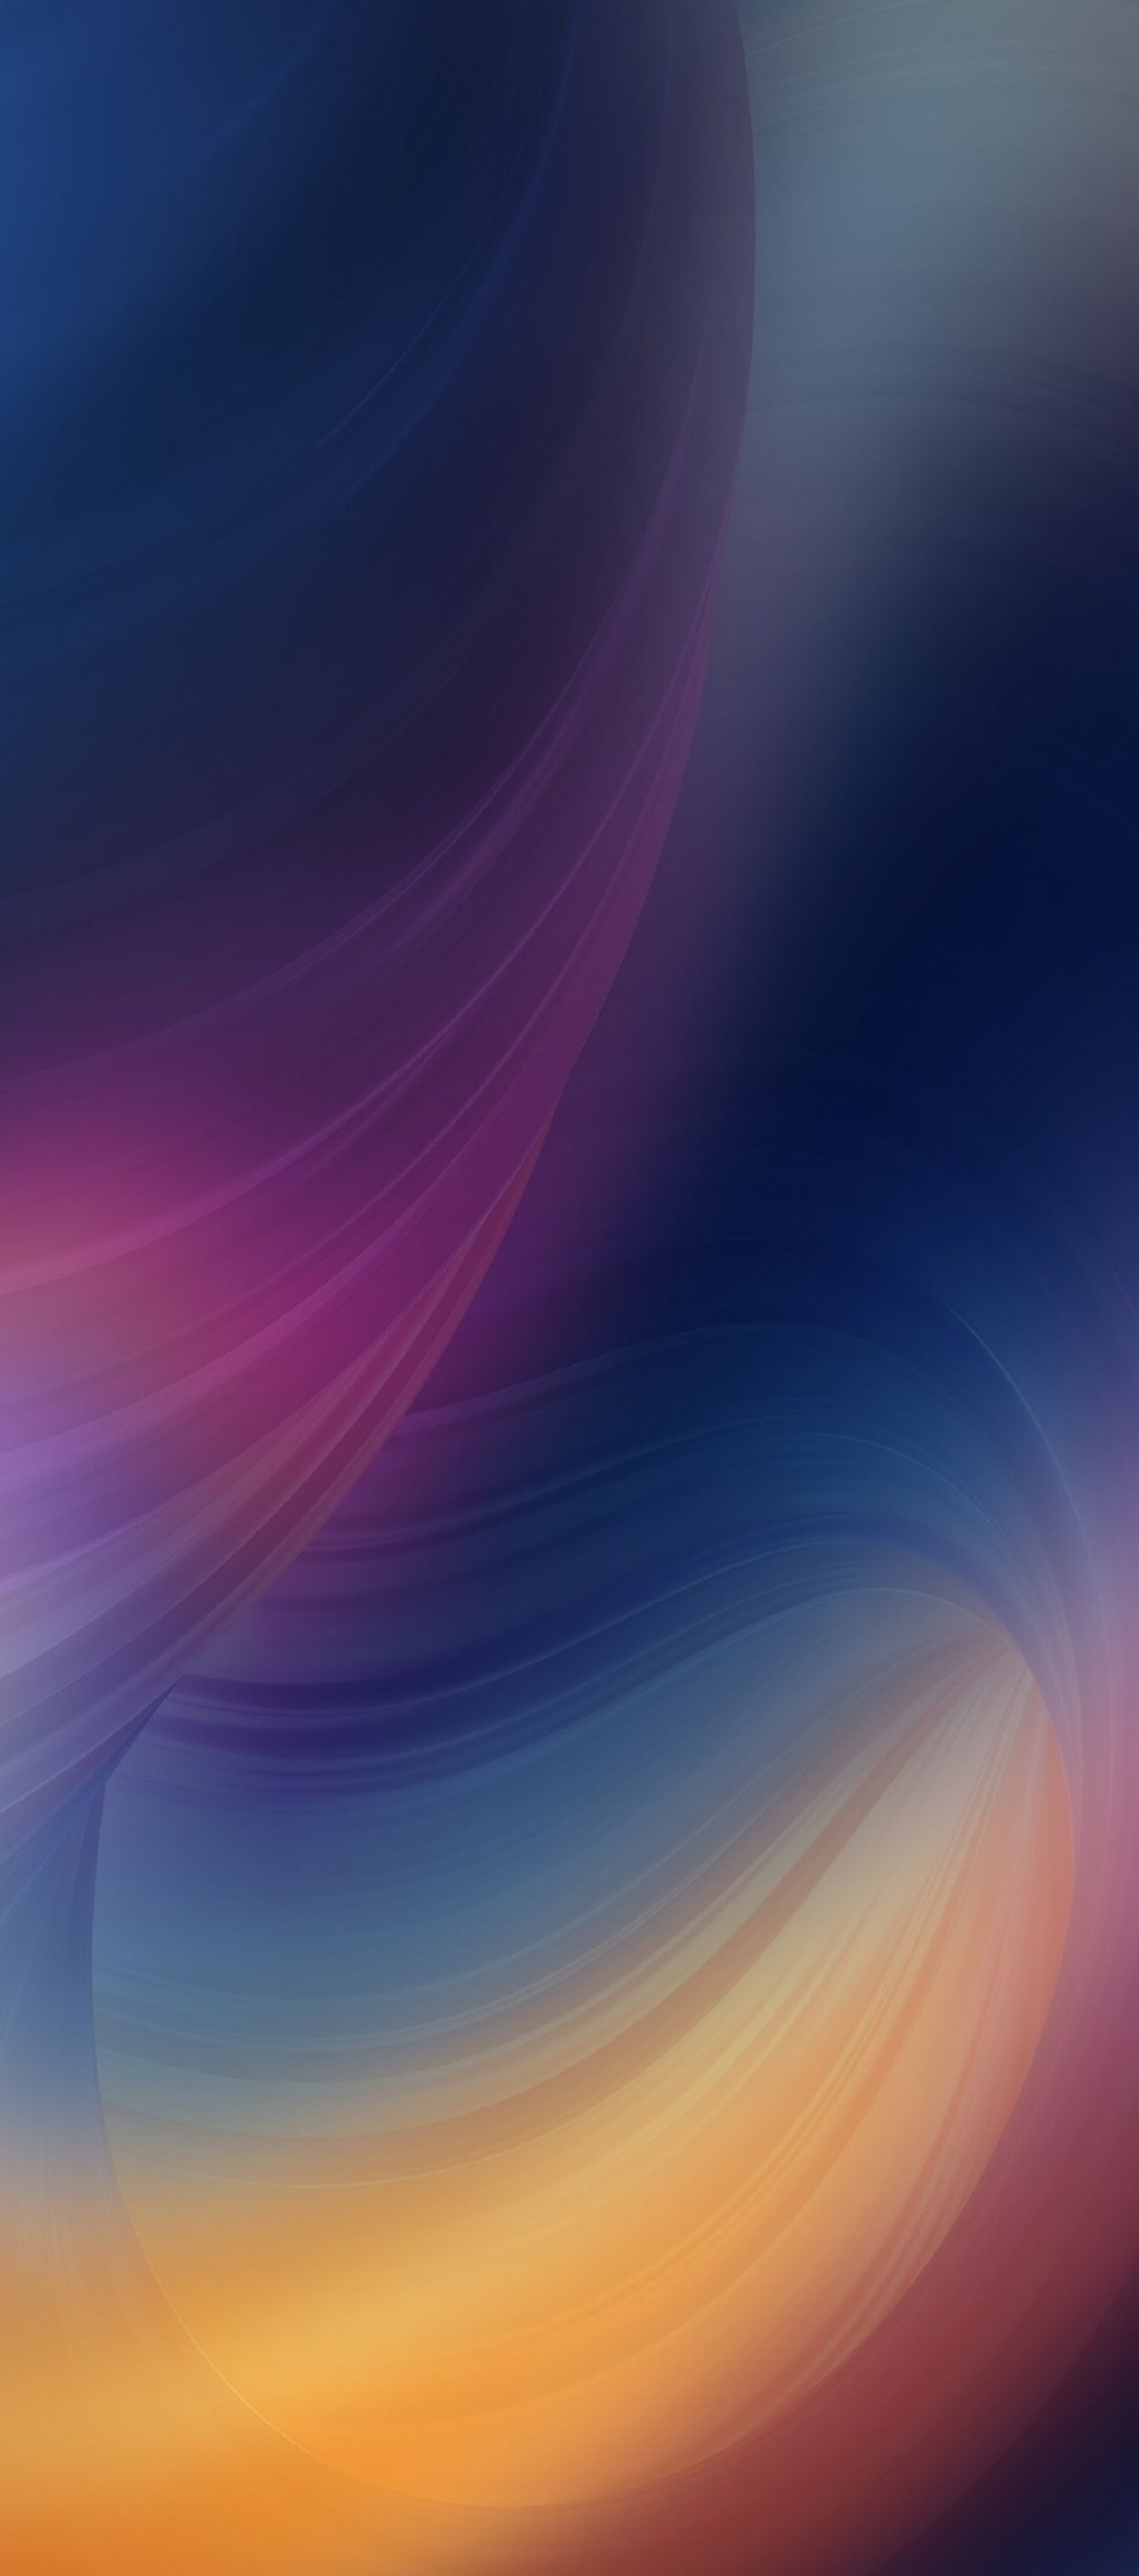 ios 11, iphone x, purple, blue, clean, simple, abstract, apple